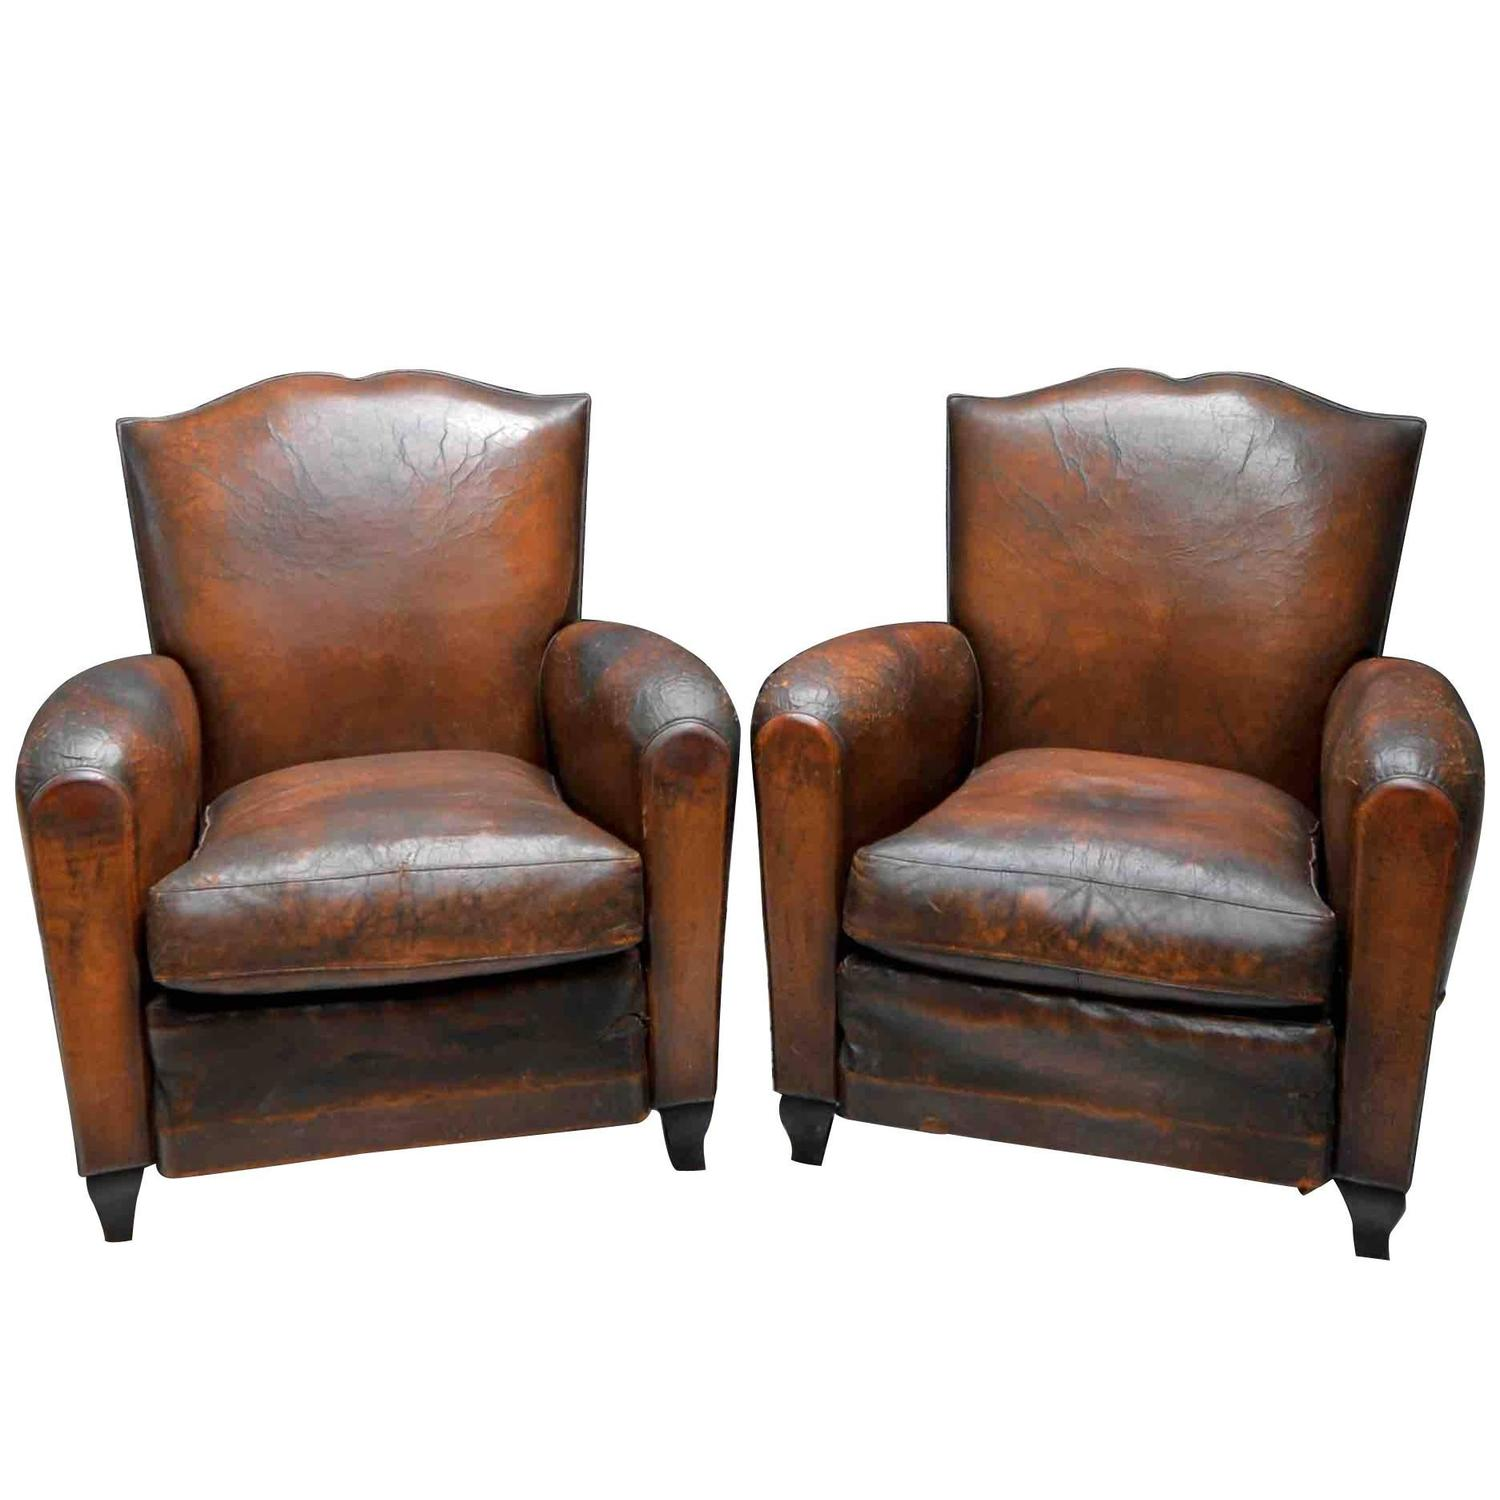 Small french art deco moustache leather lounge club chairs at 1stdibs